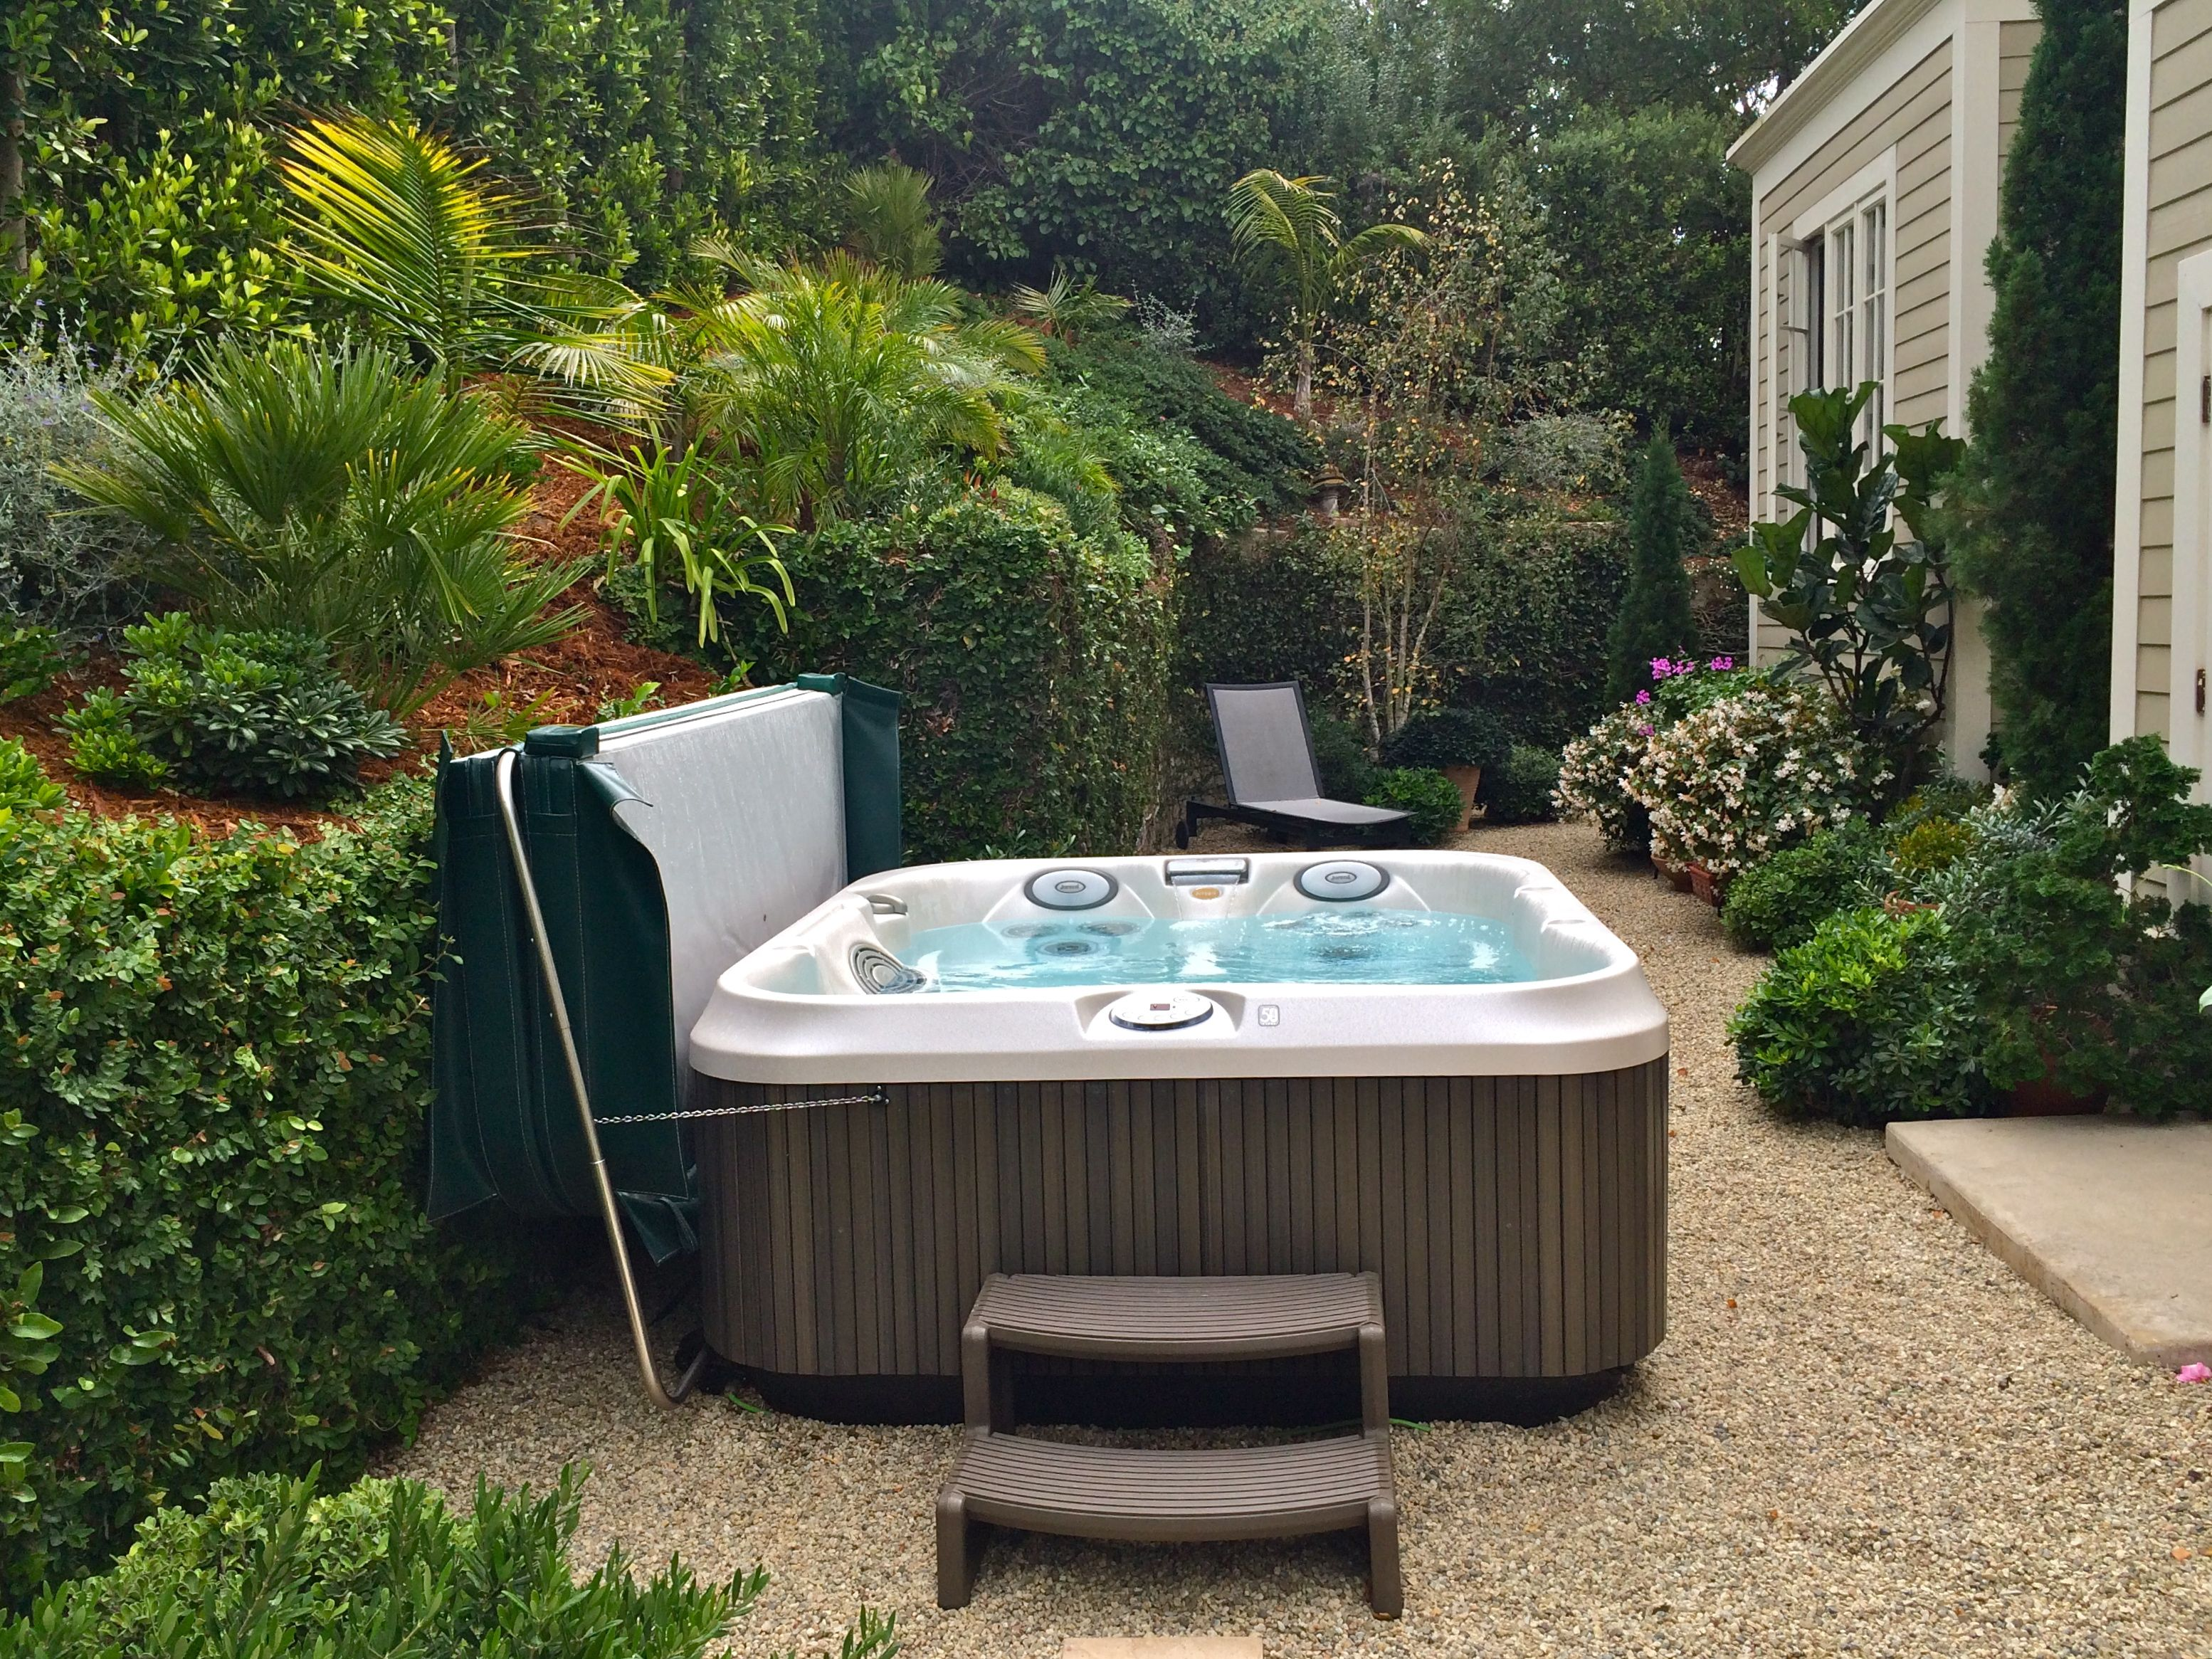 Whirlpool Garten Bauhaus A Secret Garden Escape Surrounds Our Jacuzzi J325 In Summerland Ca